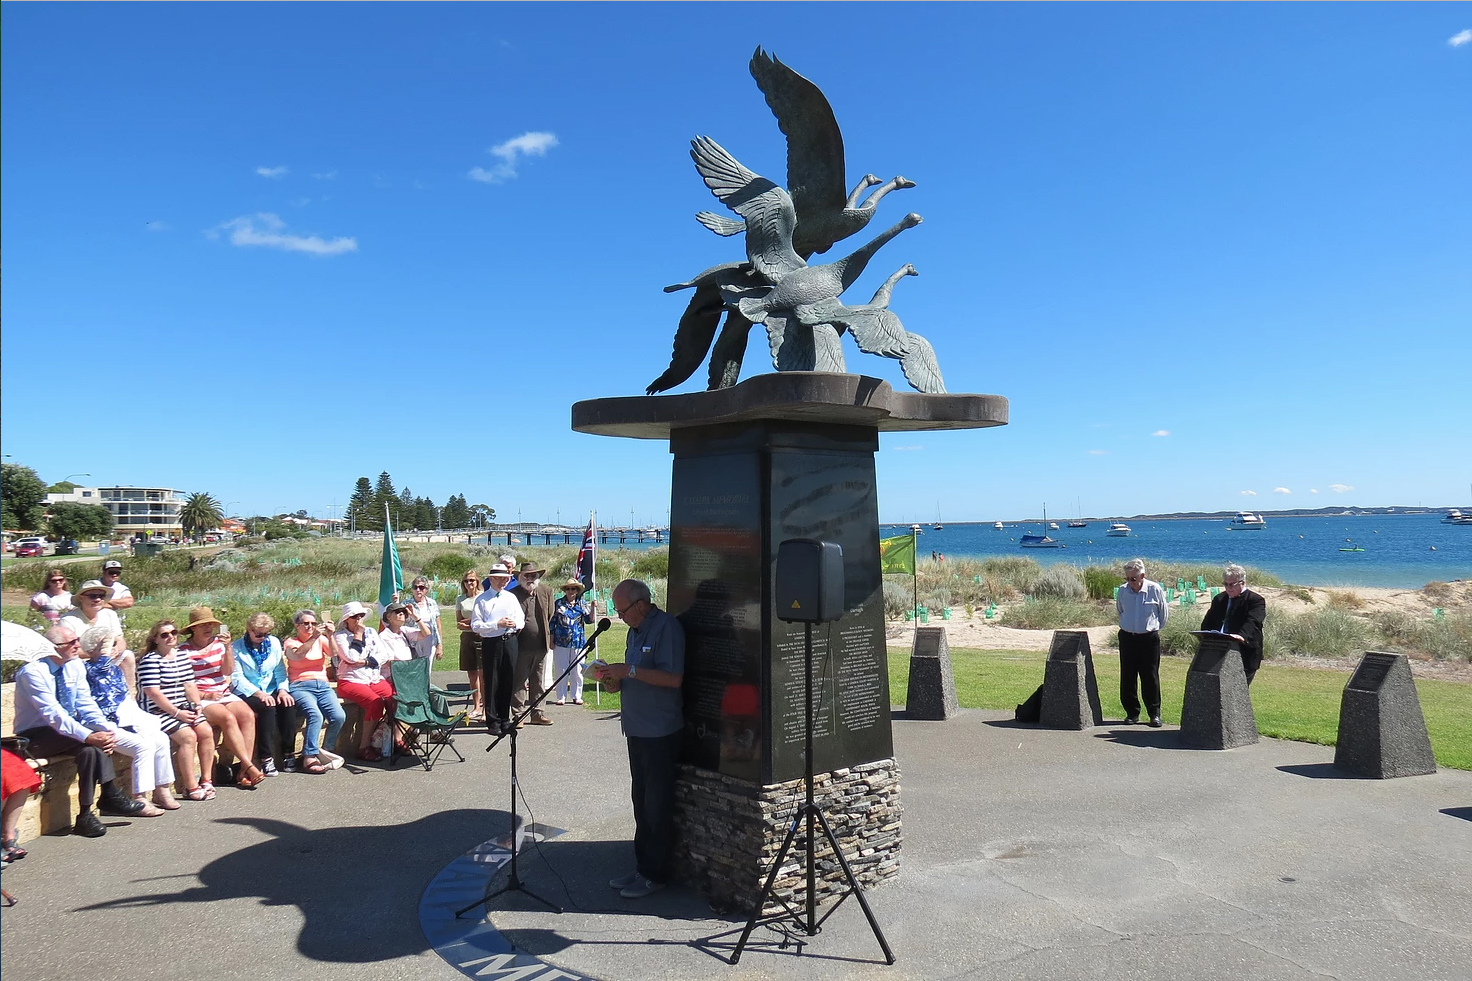 ROCKINGHAM BEACH: In March, Australian Irish Heritage Association commemorated the Catalpa rescue in a ceremony at Rockingham Beach's Catalpa Memorial, outside of Perth. The Catalpa was a ship bought by Clan na Gael and John Devoy in New York that helped six Irish Fenian prisoners escape from imprisonment in Western Australia in 1876.